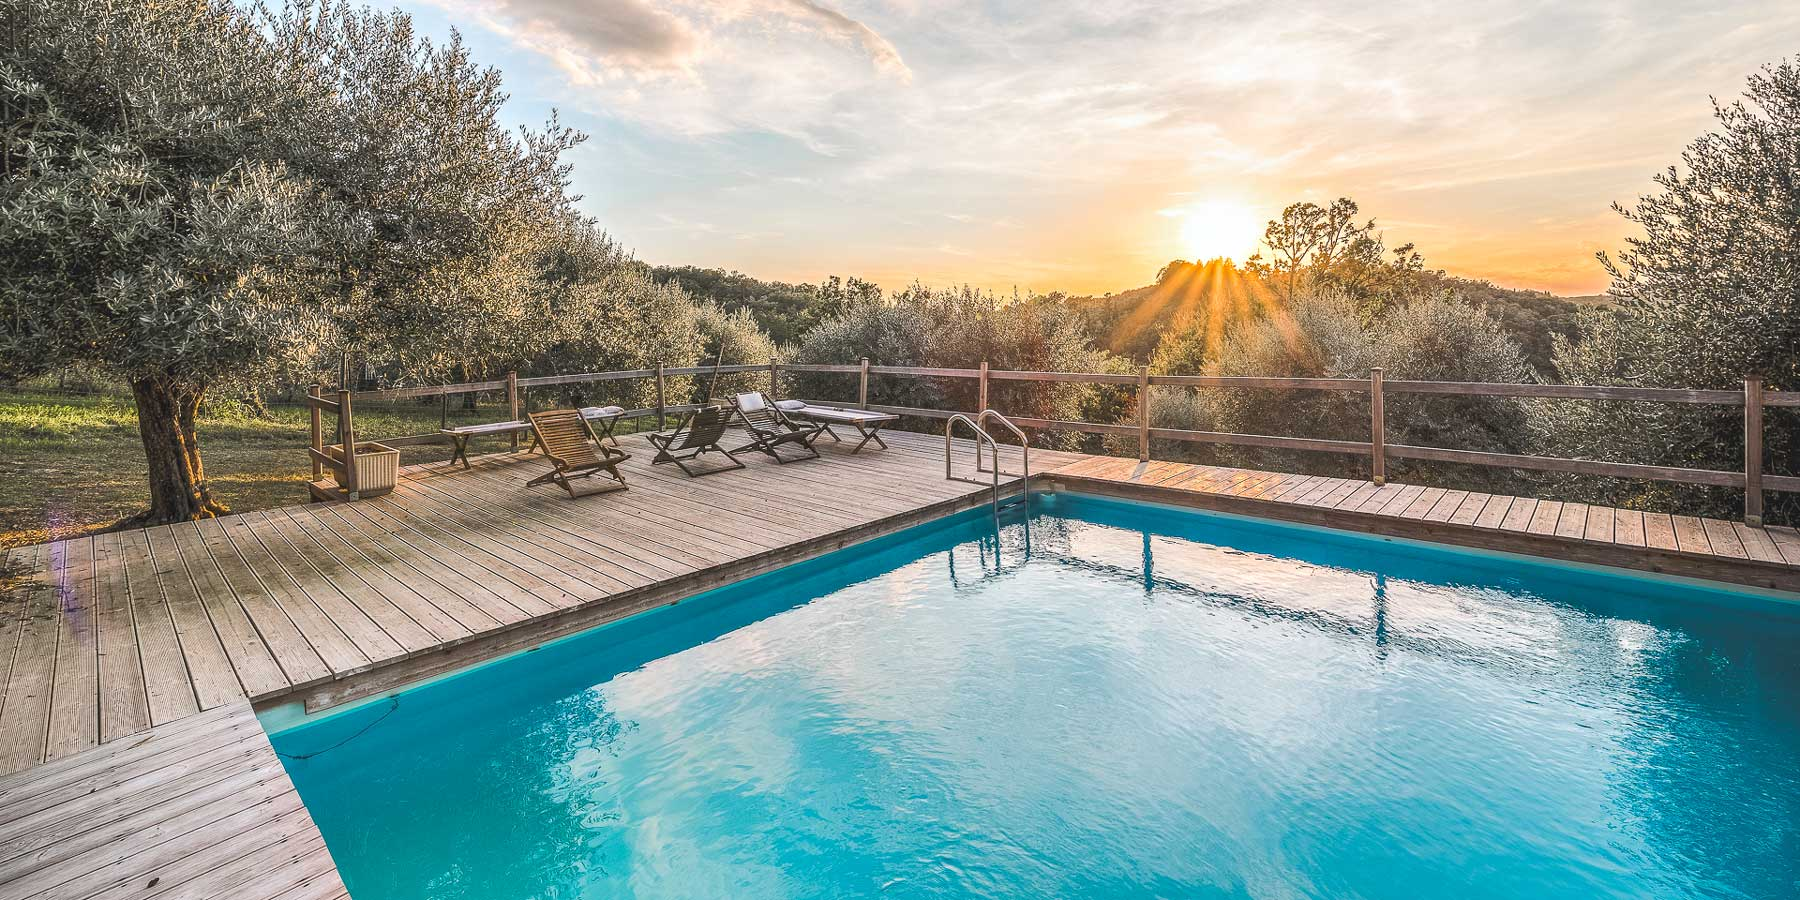 Best agriturismo in Tuscany for families Best Agriturismo